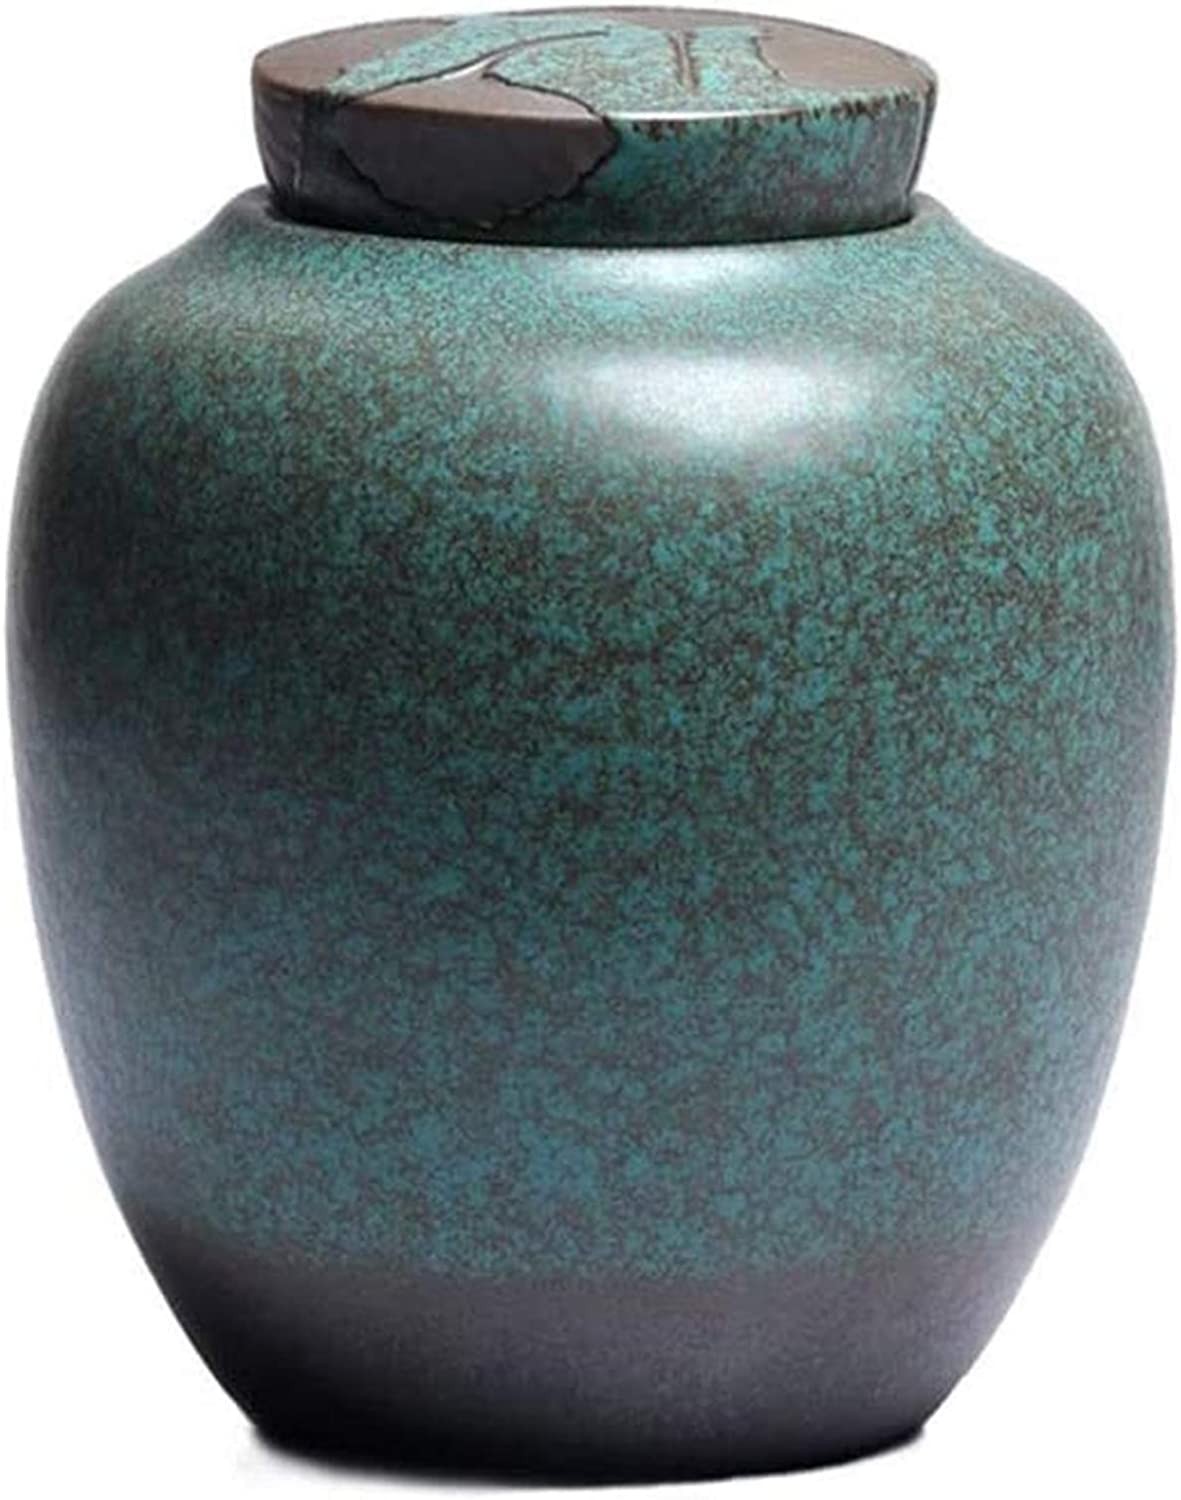 Cremation Urns for Adult Funeral Max 58% OFF Max 79% OFF Ashes Decorative Burial